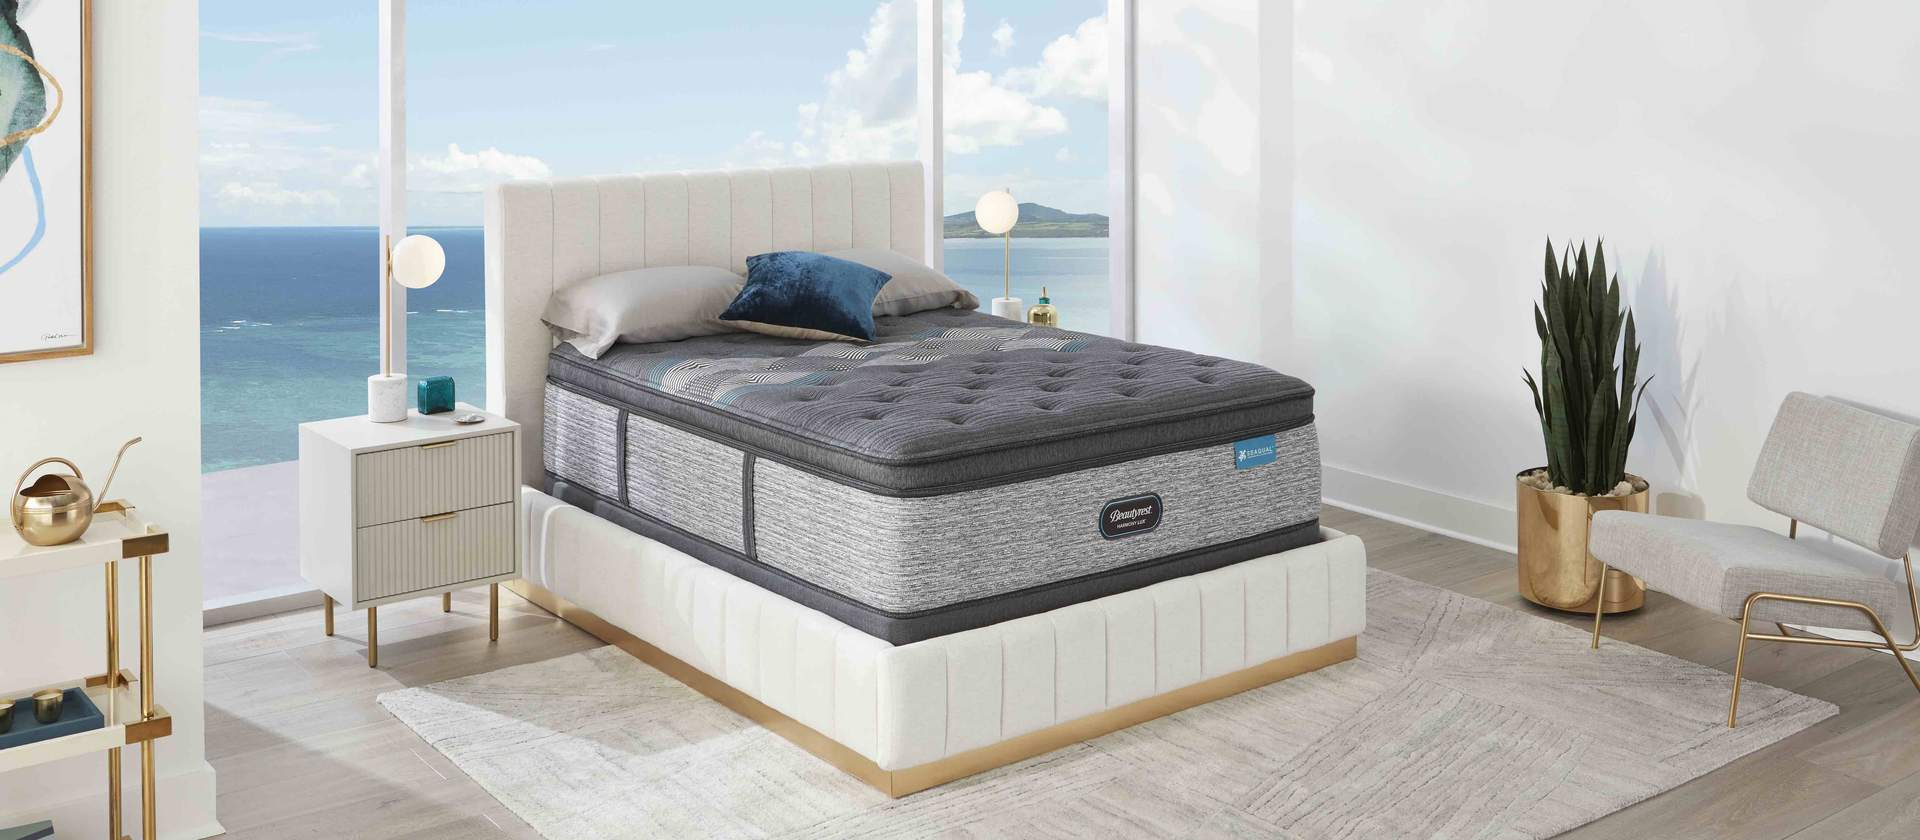 Lowest Price Mattresses in Calgary GUARANTEED